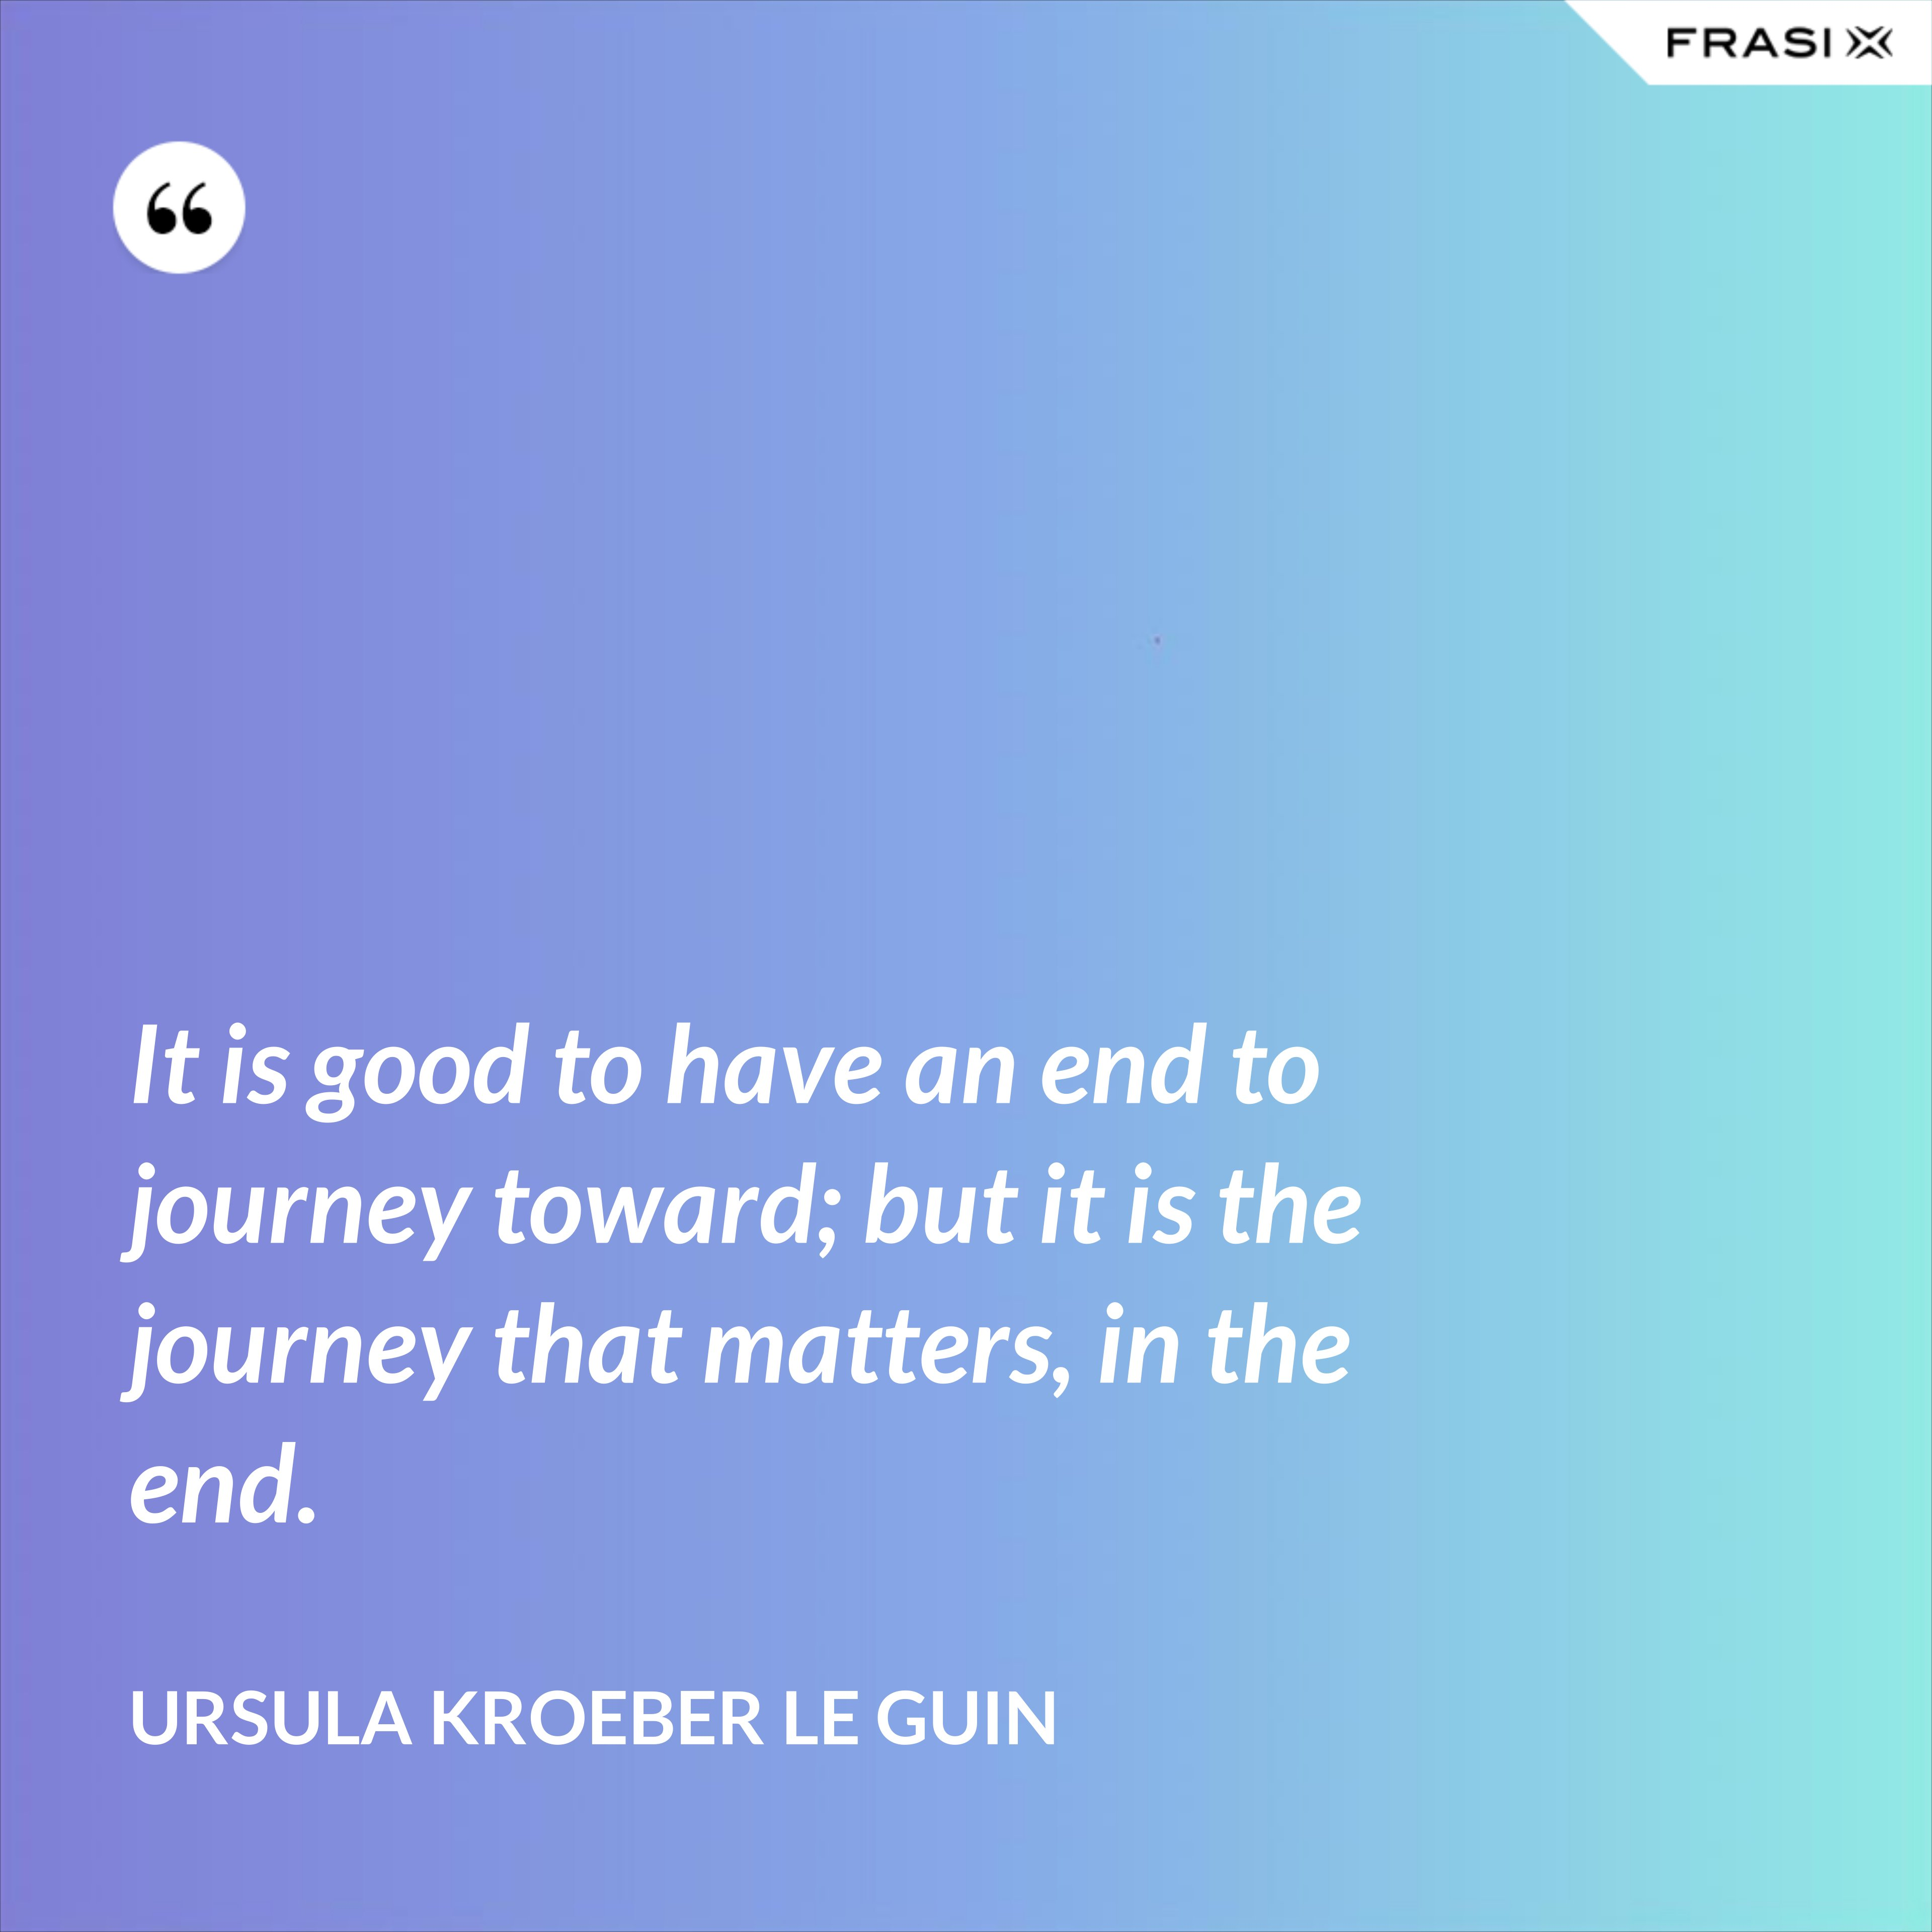 It is good to have an end to journey toward; but it is the journey that matters, in the end. - Ursula Kroeber Le Guin